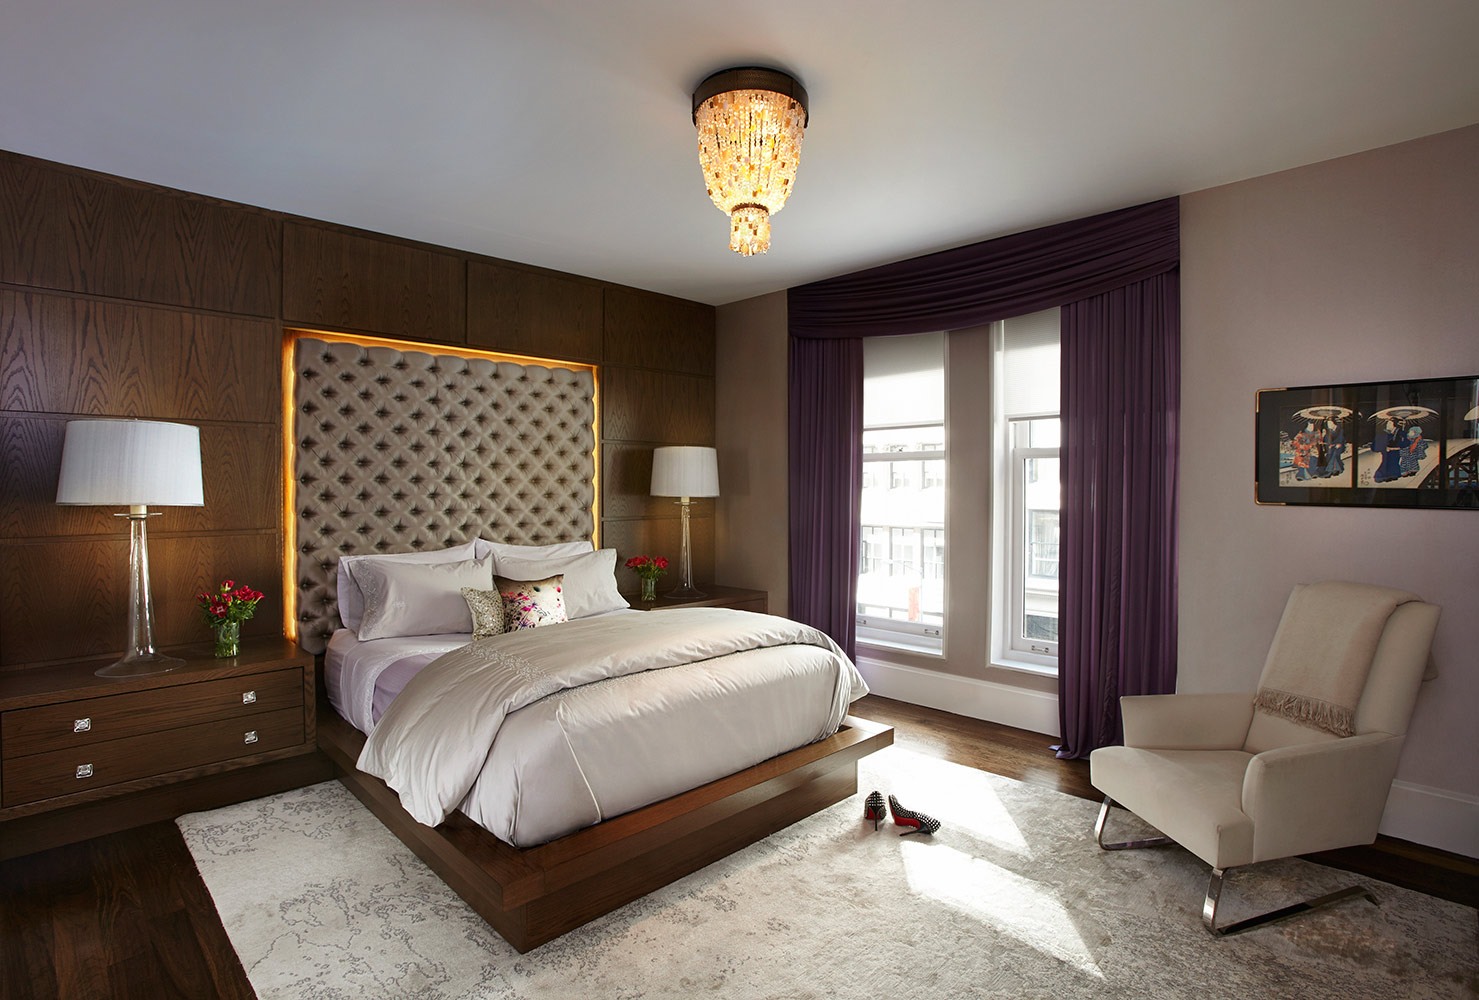 Evelyn Benatar New York Interior Design Bedroom Image By Jonathan R Beckerman